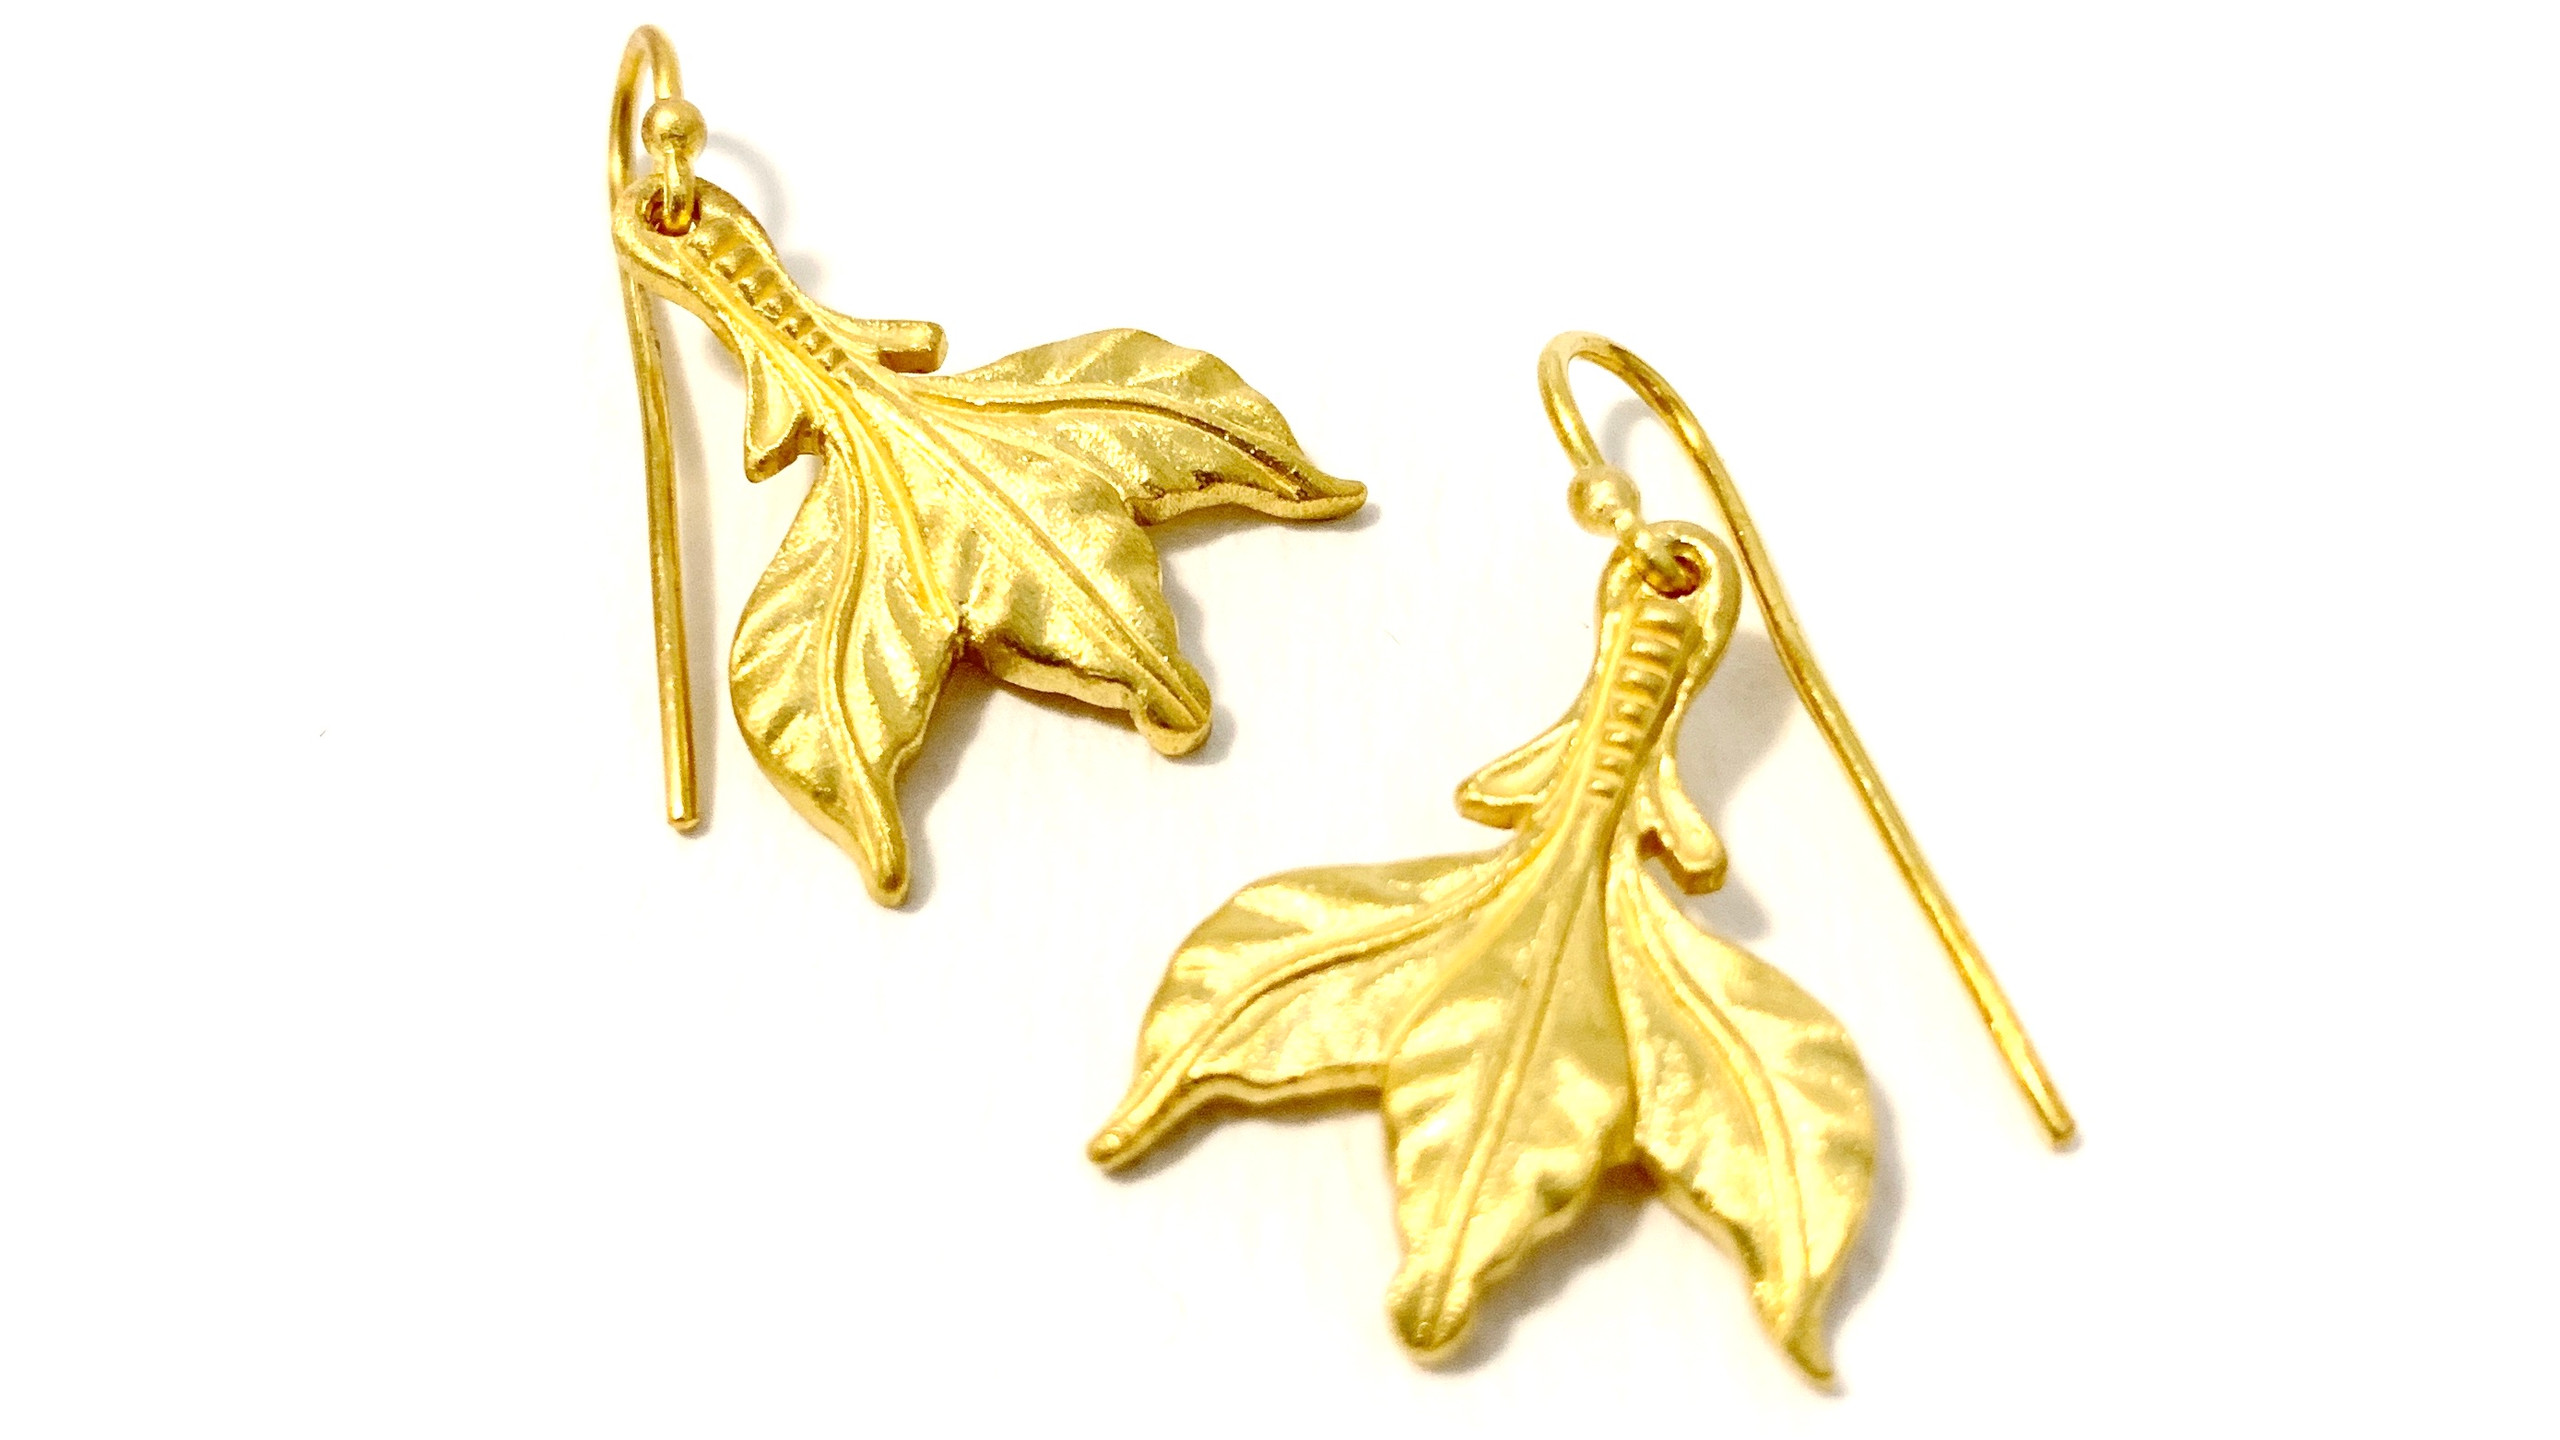 Jimena Roel 22k Gold Leaf Earrings